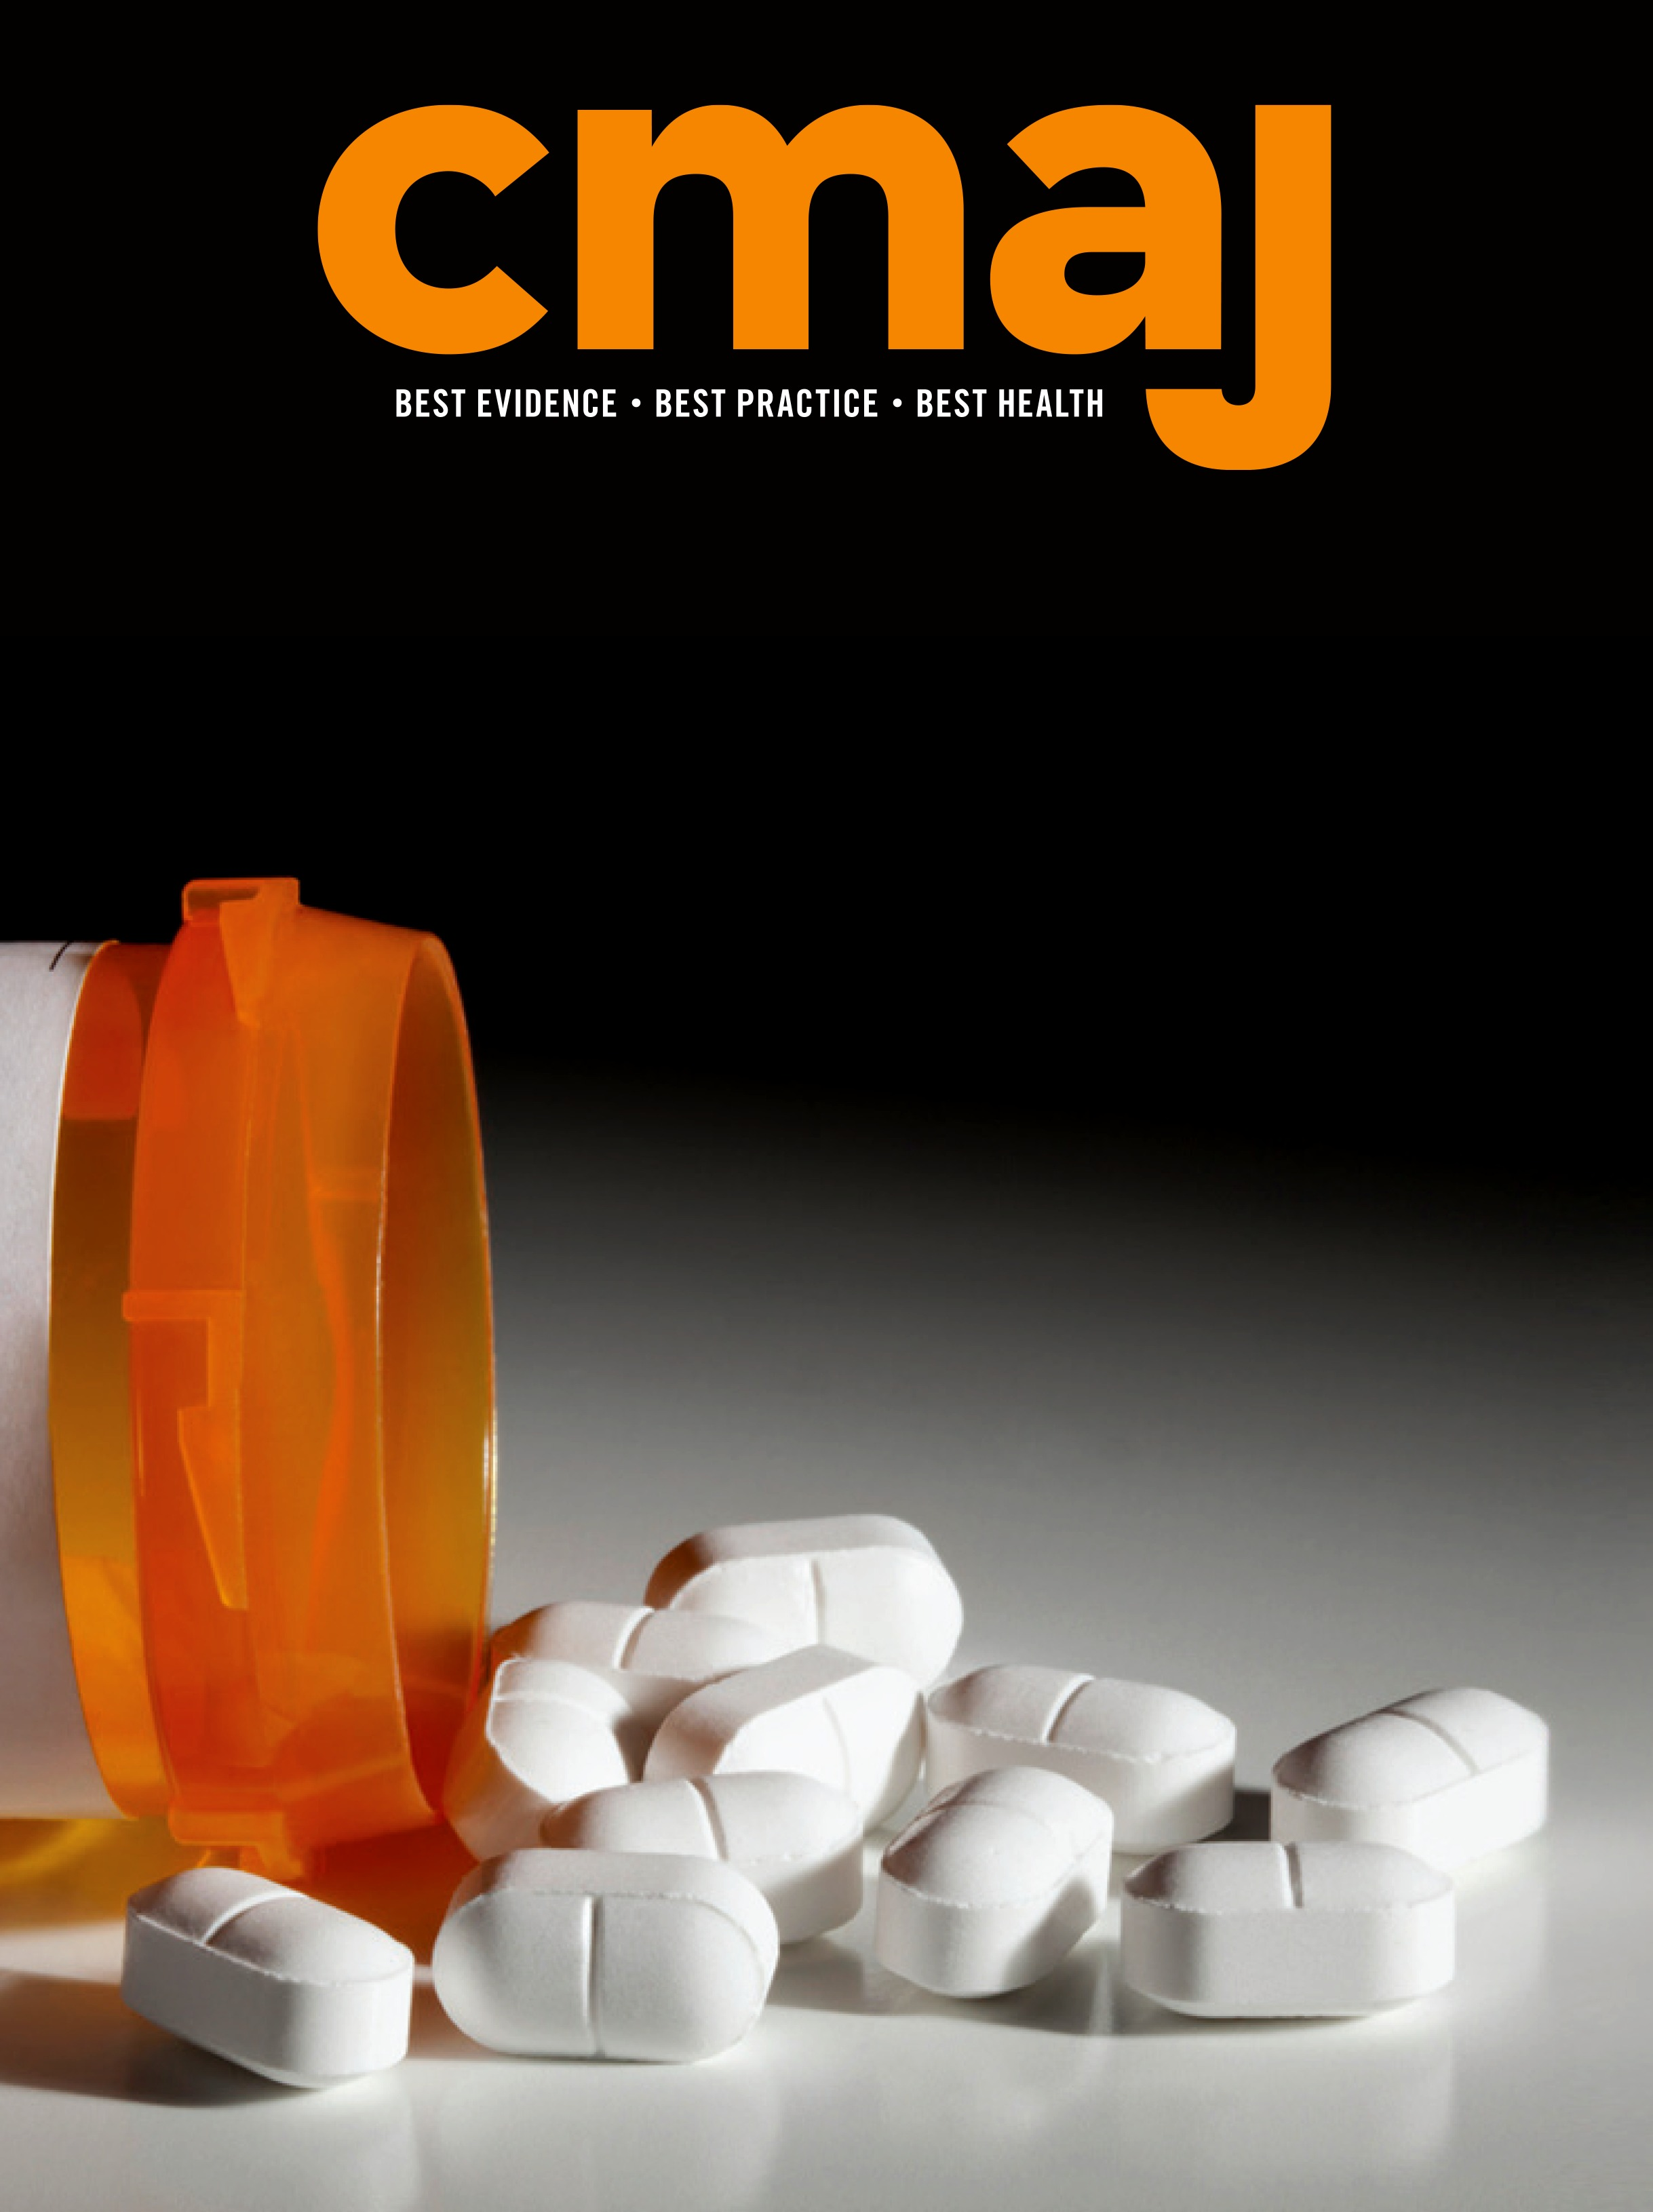 New Canadian Guidance On Opioid Use For Chronic Pain Necessary But